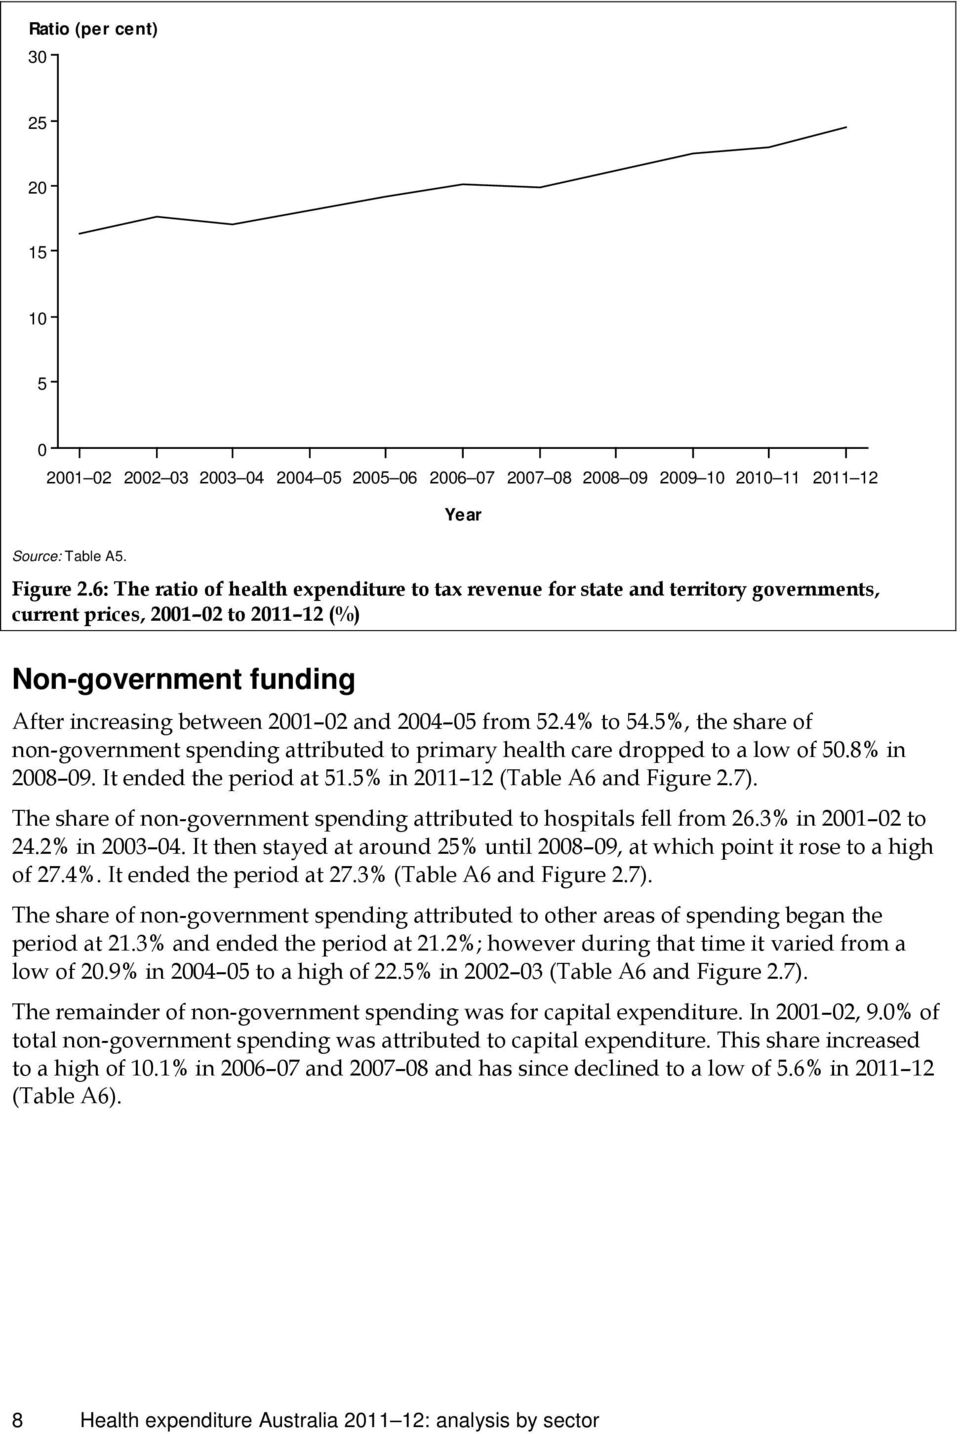 4% to 54.5%, the share of non-government spending attributed to primary health care dropped to a low of 50.8% in 2008 09. It ended the period at 51.5% in 2011 12 (Table A6 and Figure 2.7).